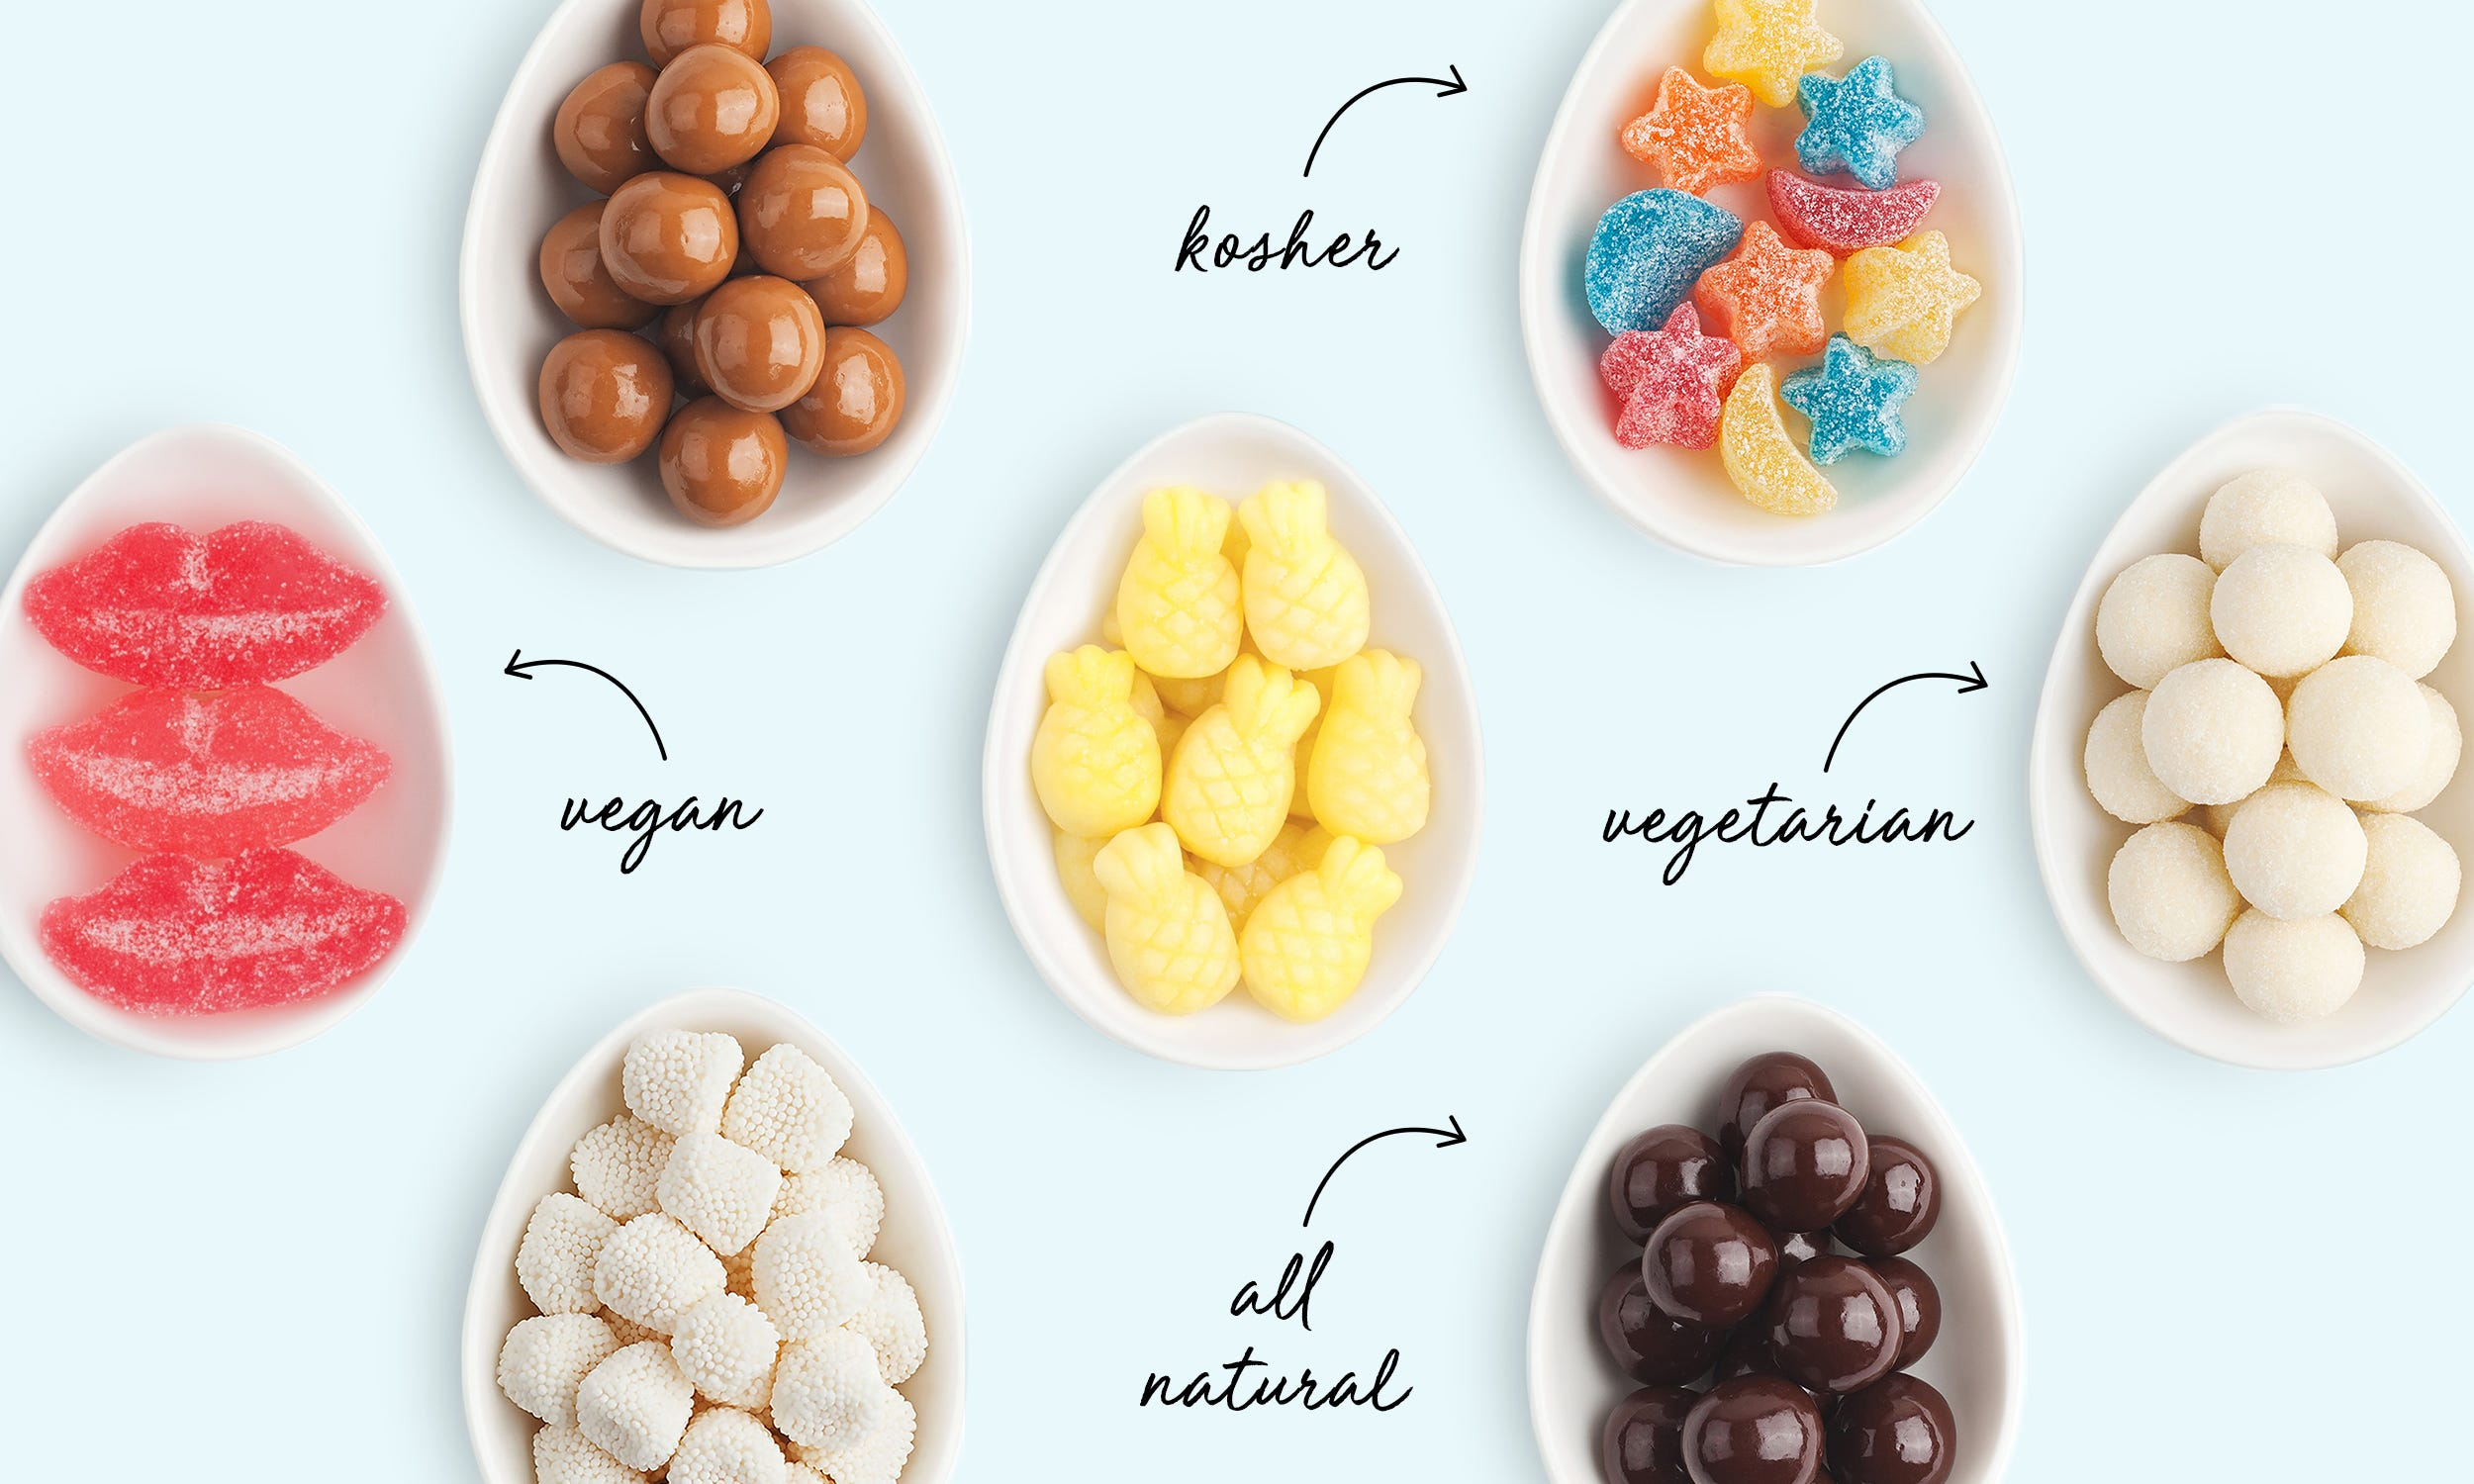 Special Dietary Needs? Learn About Our Vegan, Vegetarian & Kosher Candies!